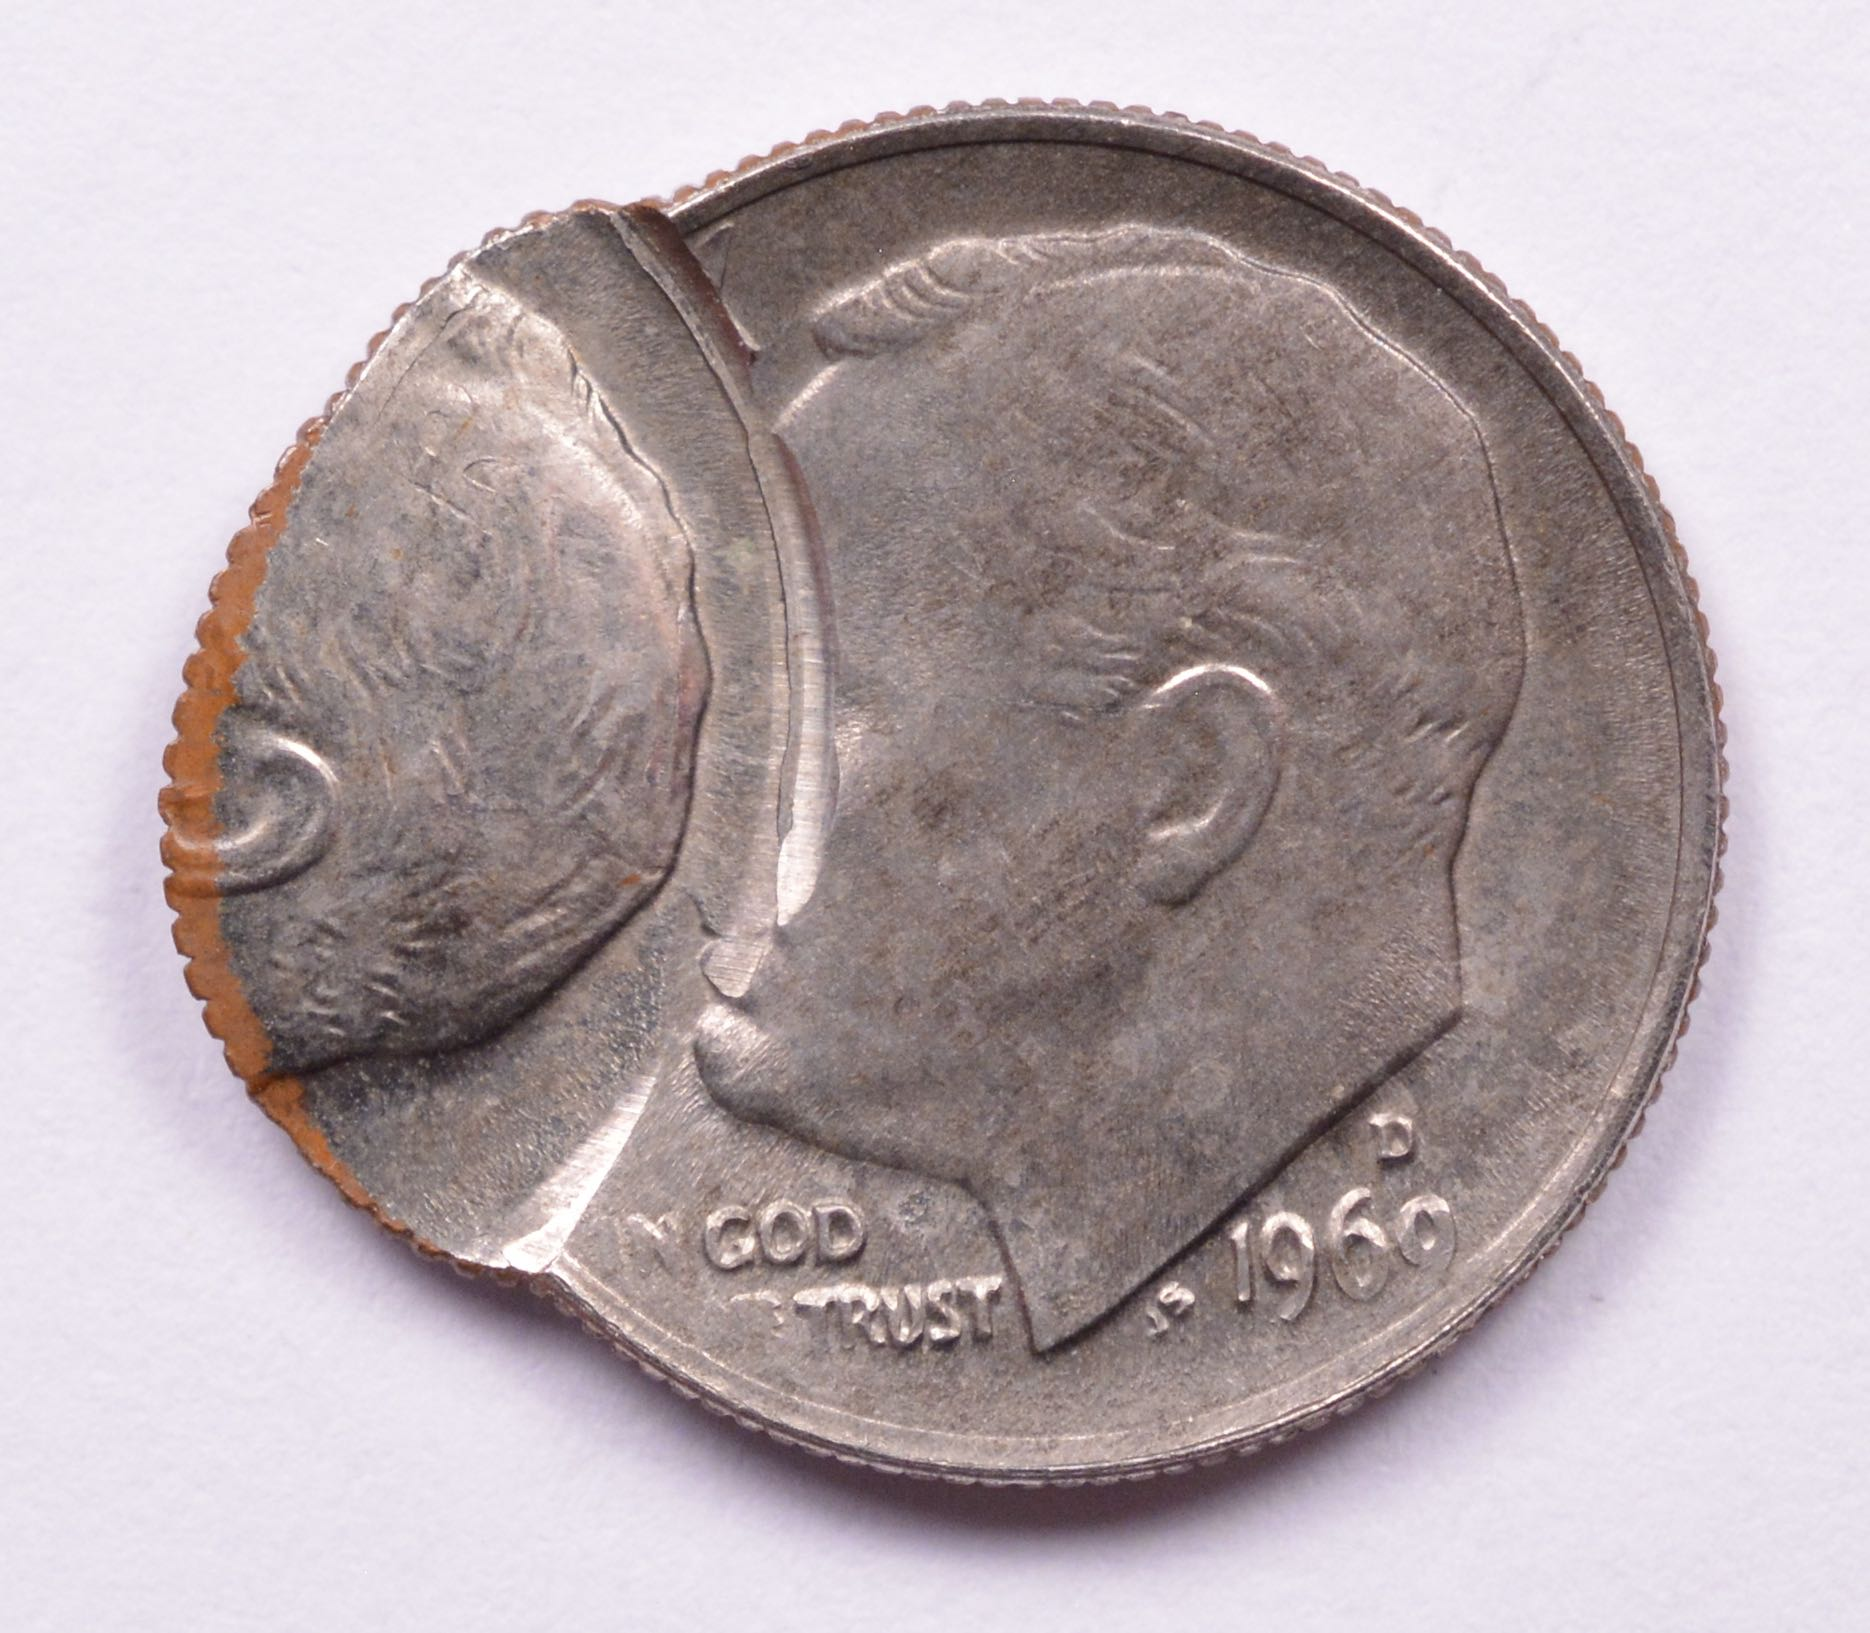 What is a 1969 dime?